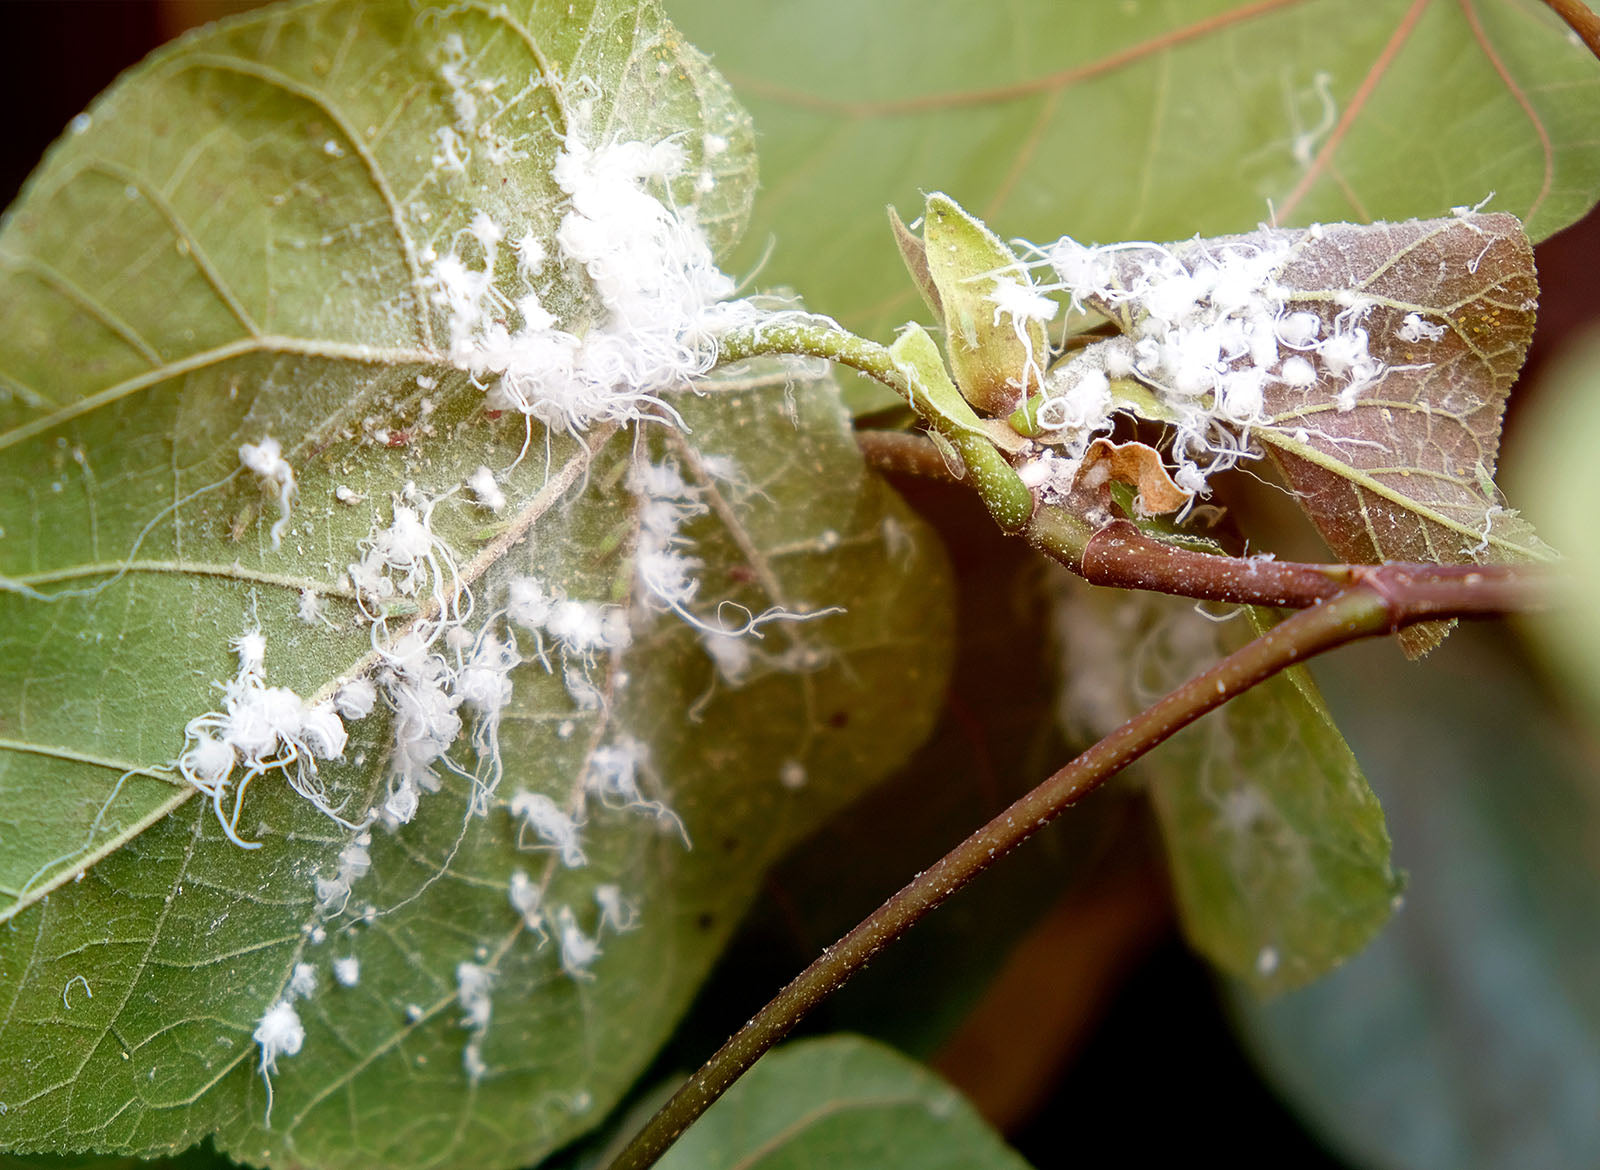 How To Get Rid Of Mealybug On Houseplants